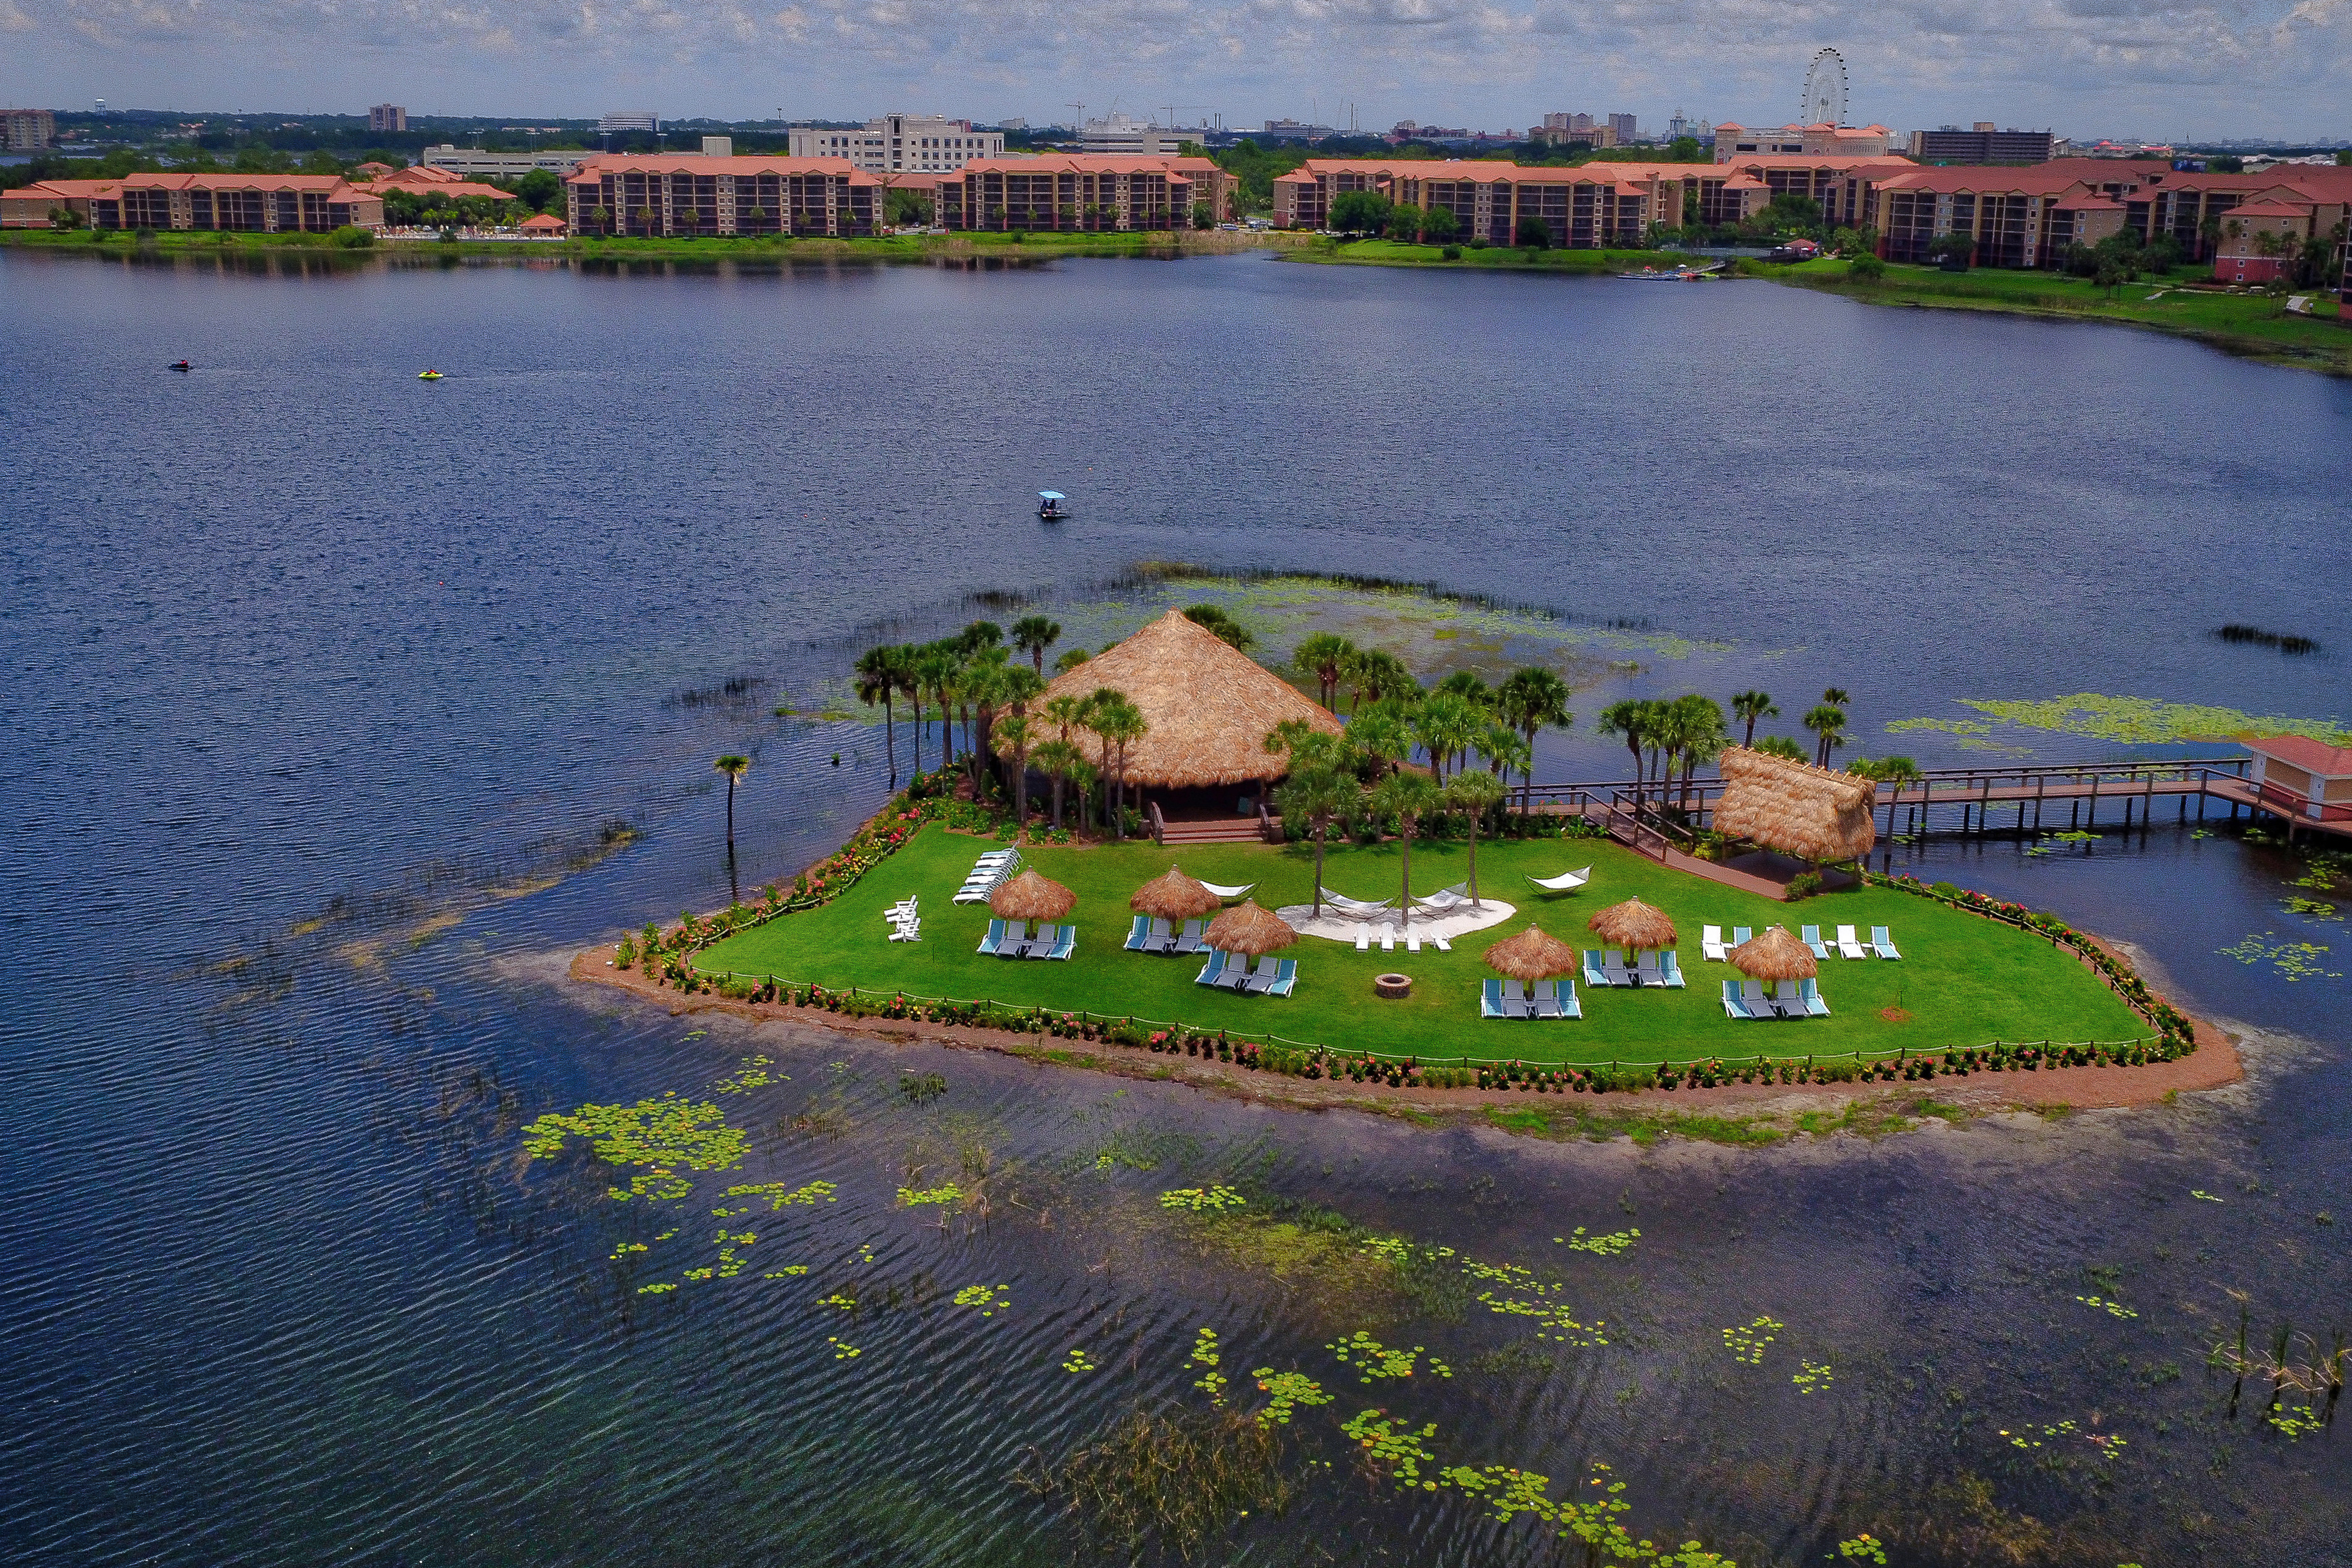 Our hotel meeting space rental off turkey lake road | Hotel venue rentals for Orlando meeting planners | Westgate Lakes Resort & Spa